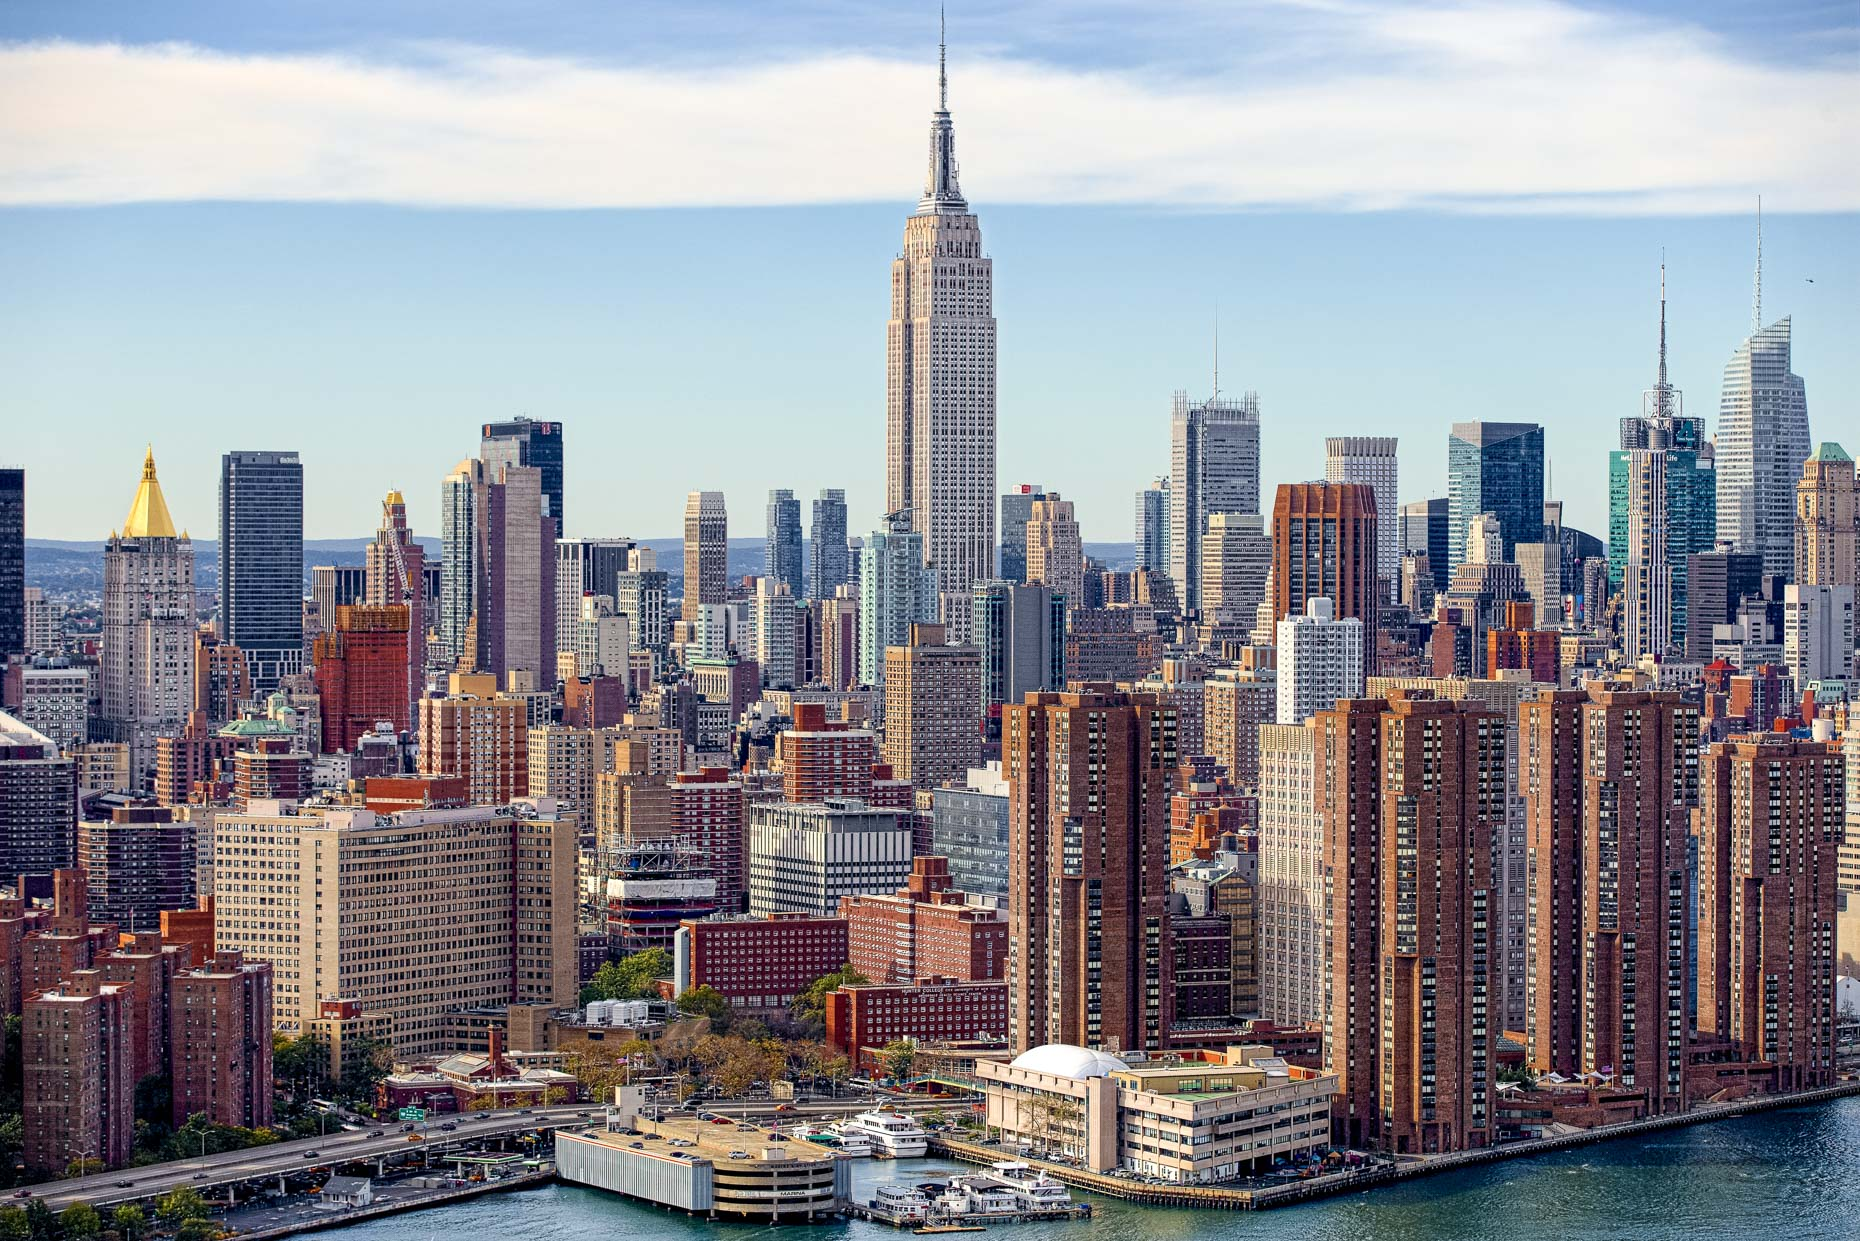 NY LA Aerial Photographer | New York City Skyline